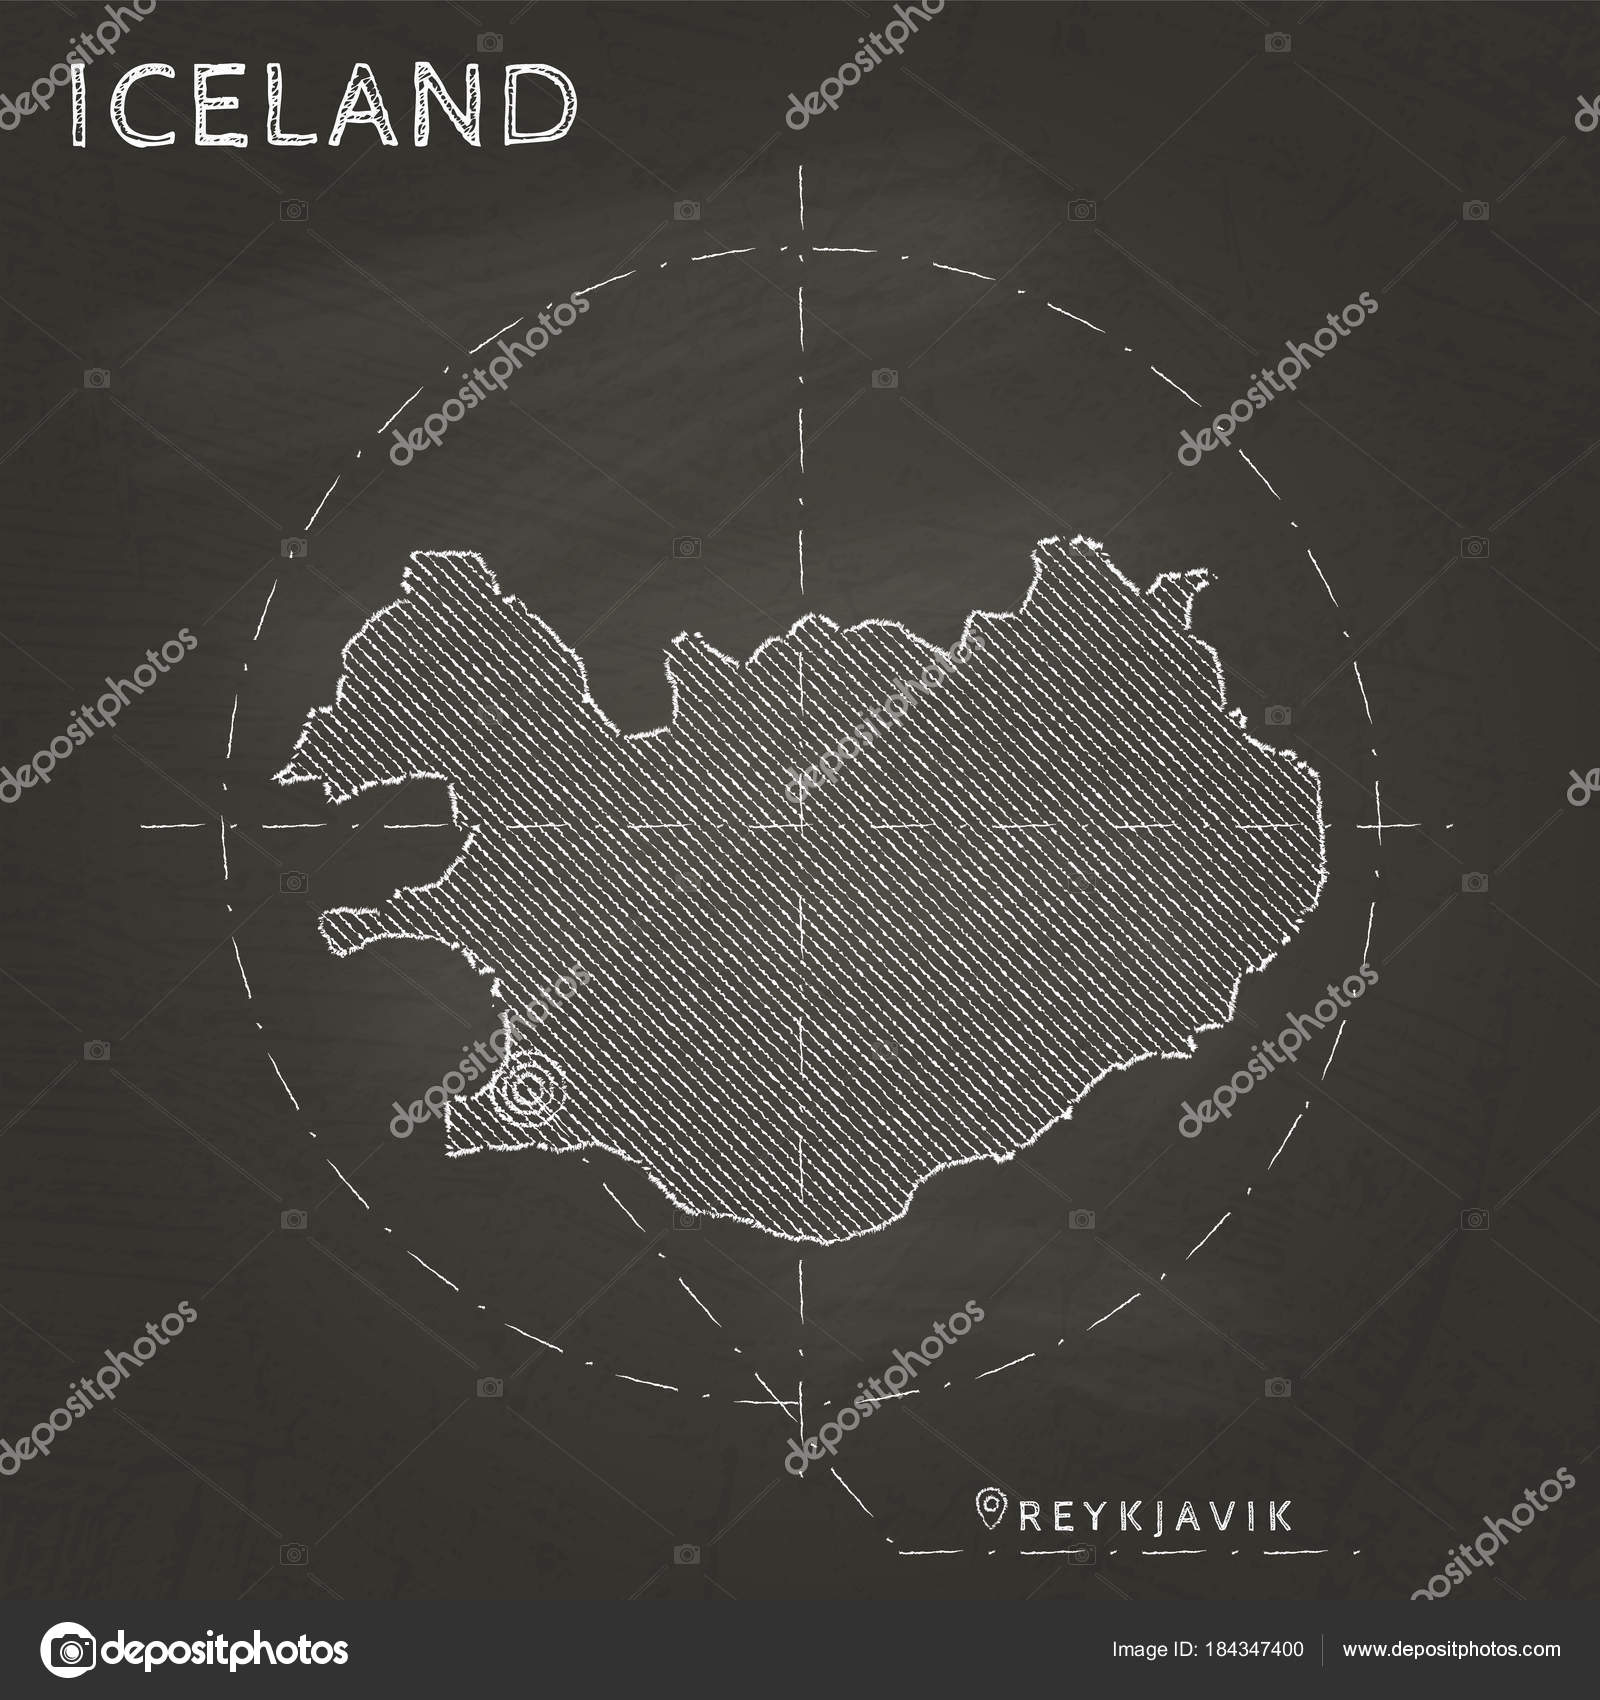 Iceland chalk map with capital marked hand drawn on textured ... on sri lanka world map, germany world map, indonesia world map, guam world map, panama world map, lesotho world map, western samoa world map, austria world map, scotland world map, haiti world map, norway world map, ireland world map, south korea world map, india world map, ceylon world map, cape verde world map, british isles world map, japan world map, antartica world map, kazakhstan world map,